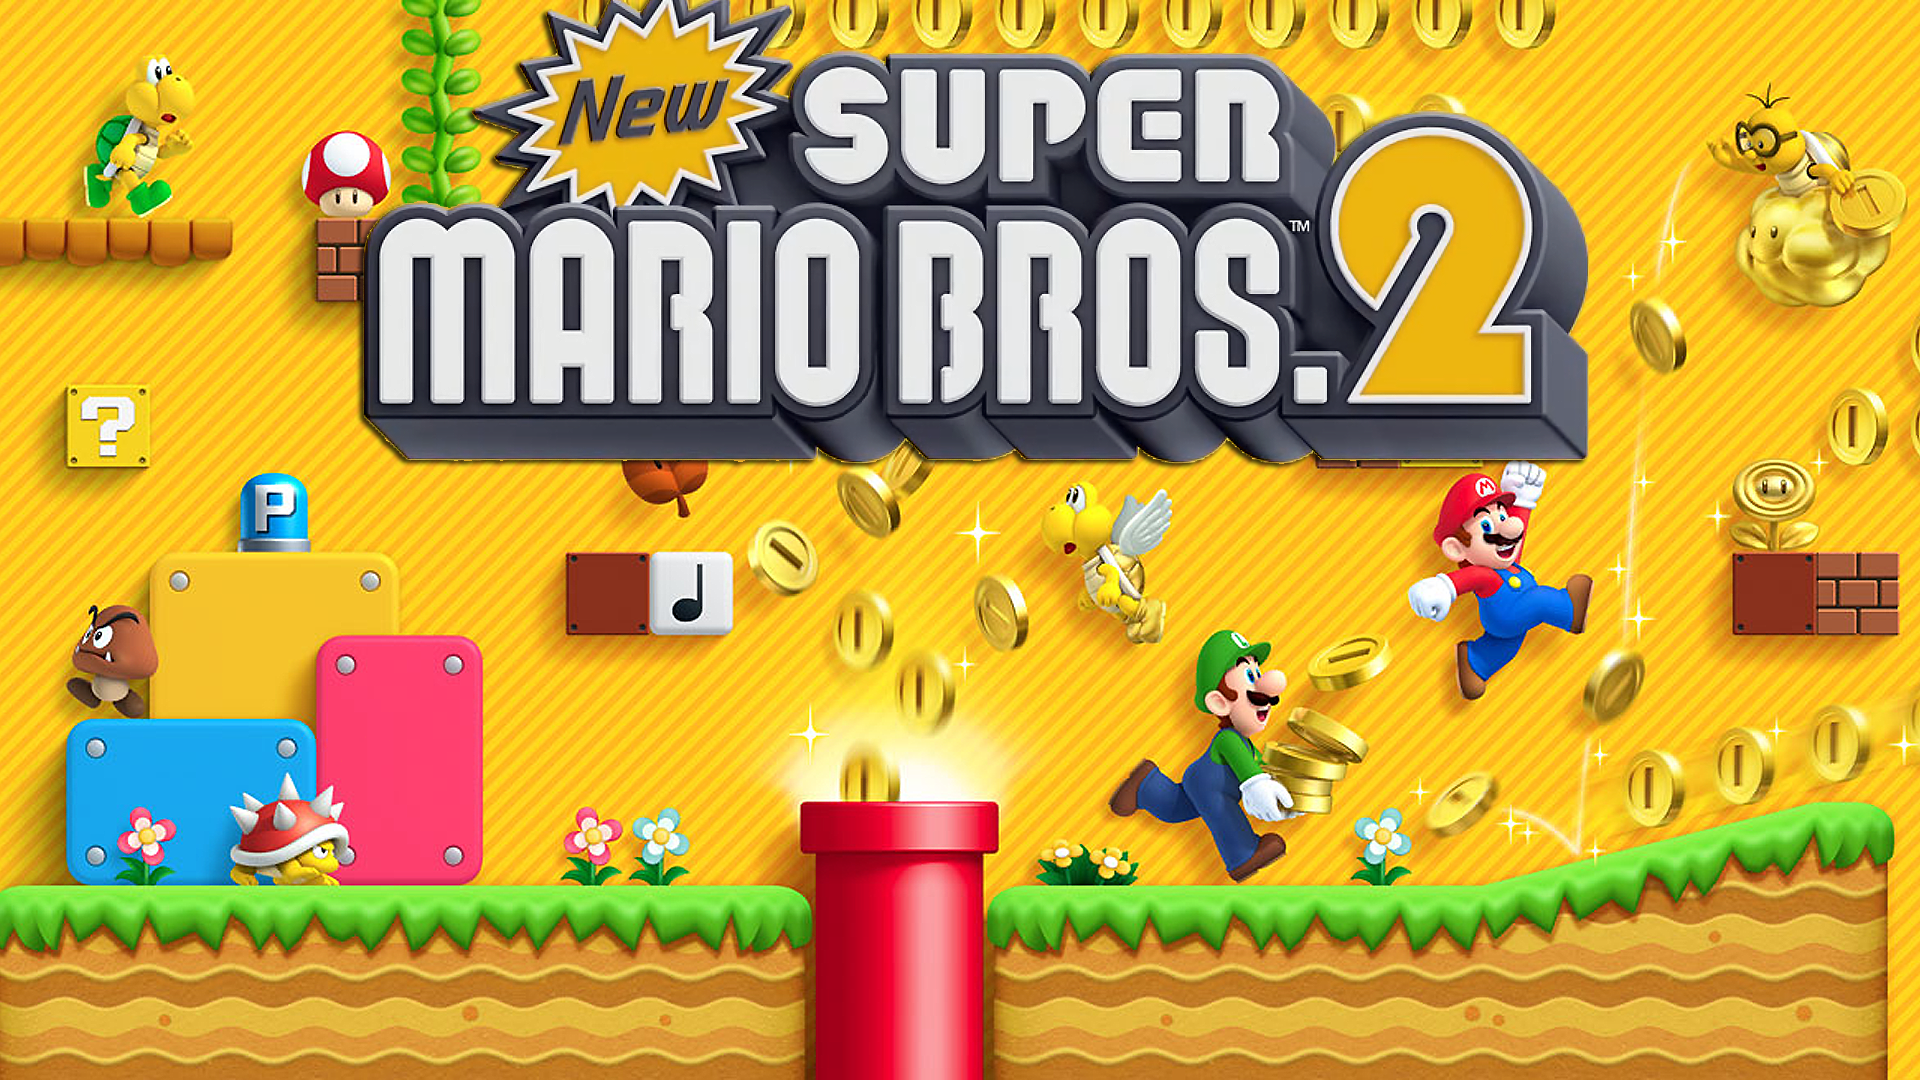 Wallpapers New Super Mario Bros 2 For Nintendo 3ds